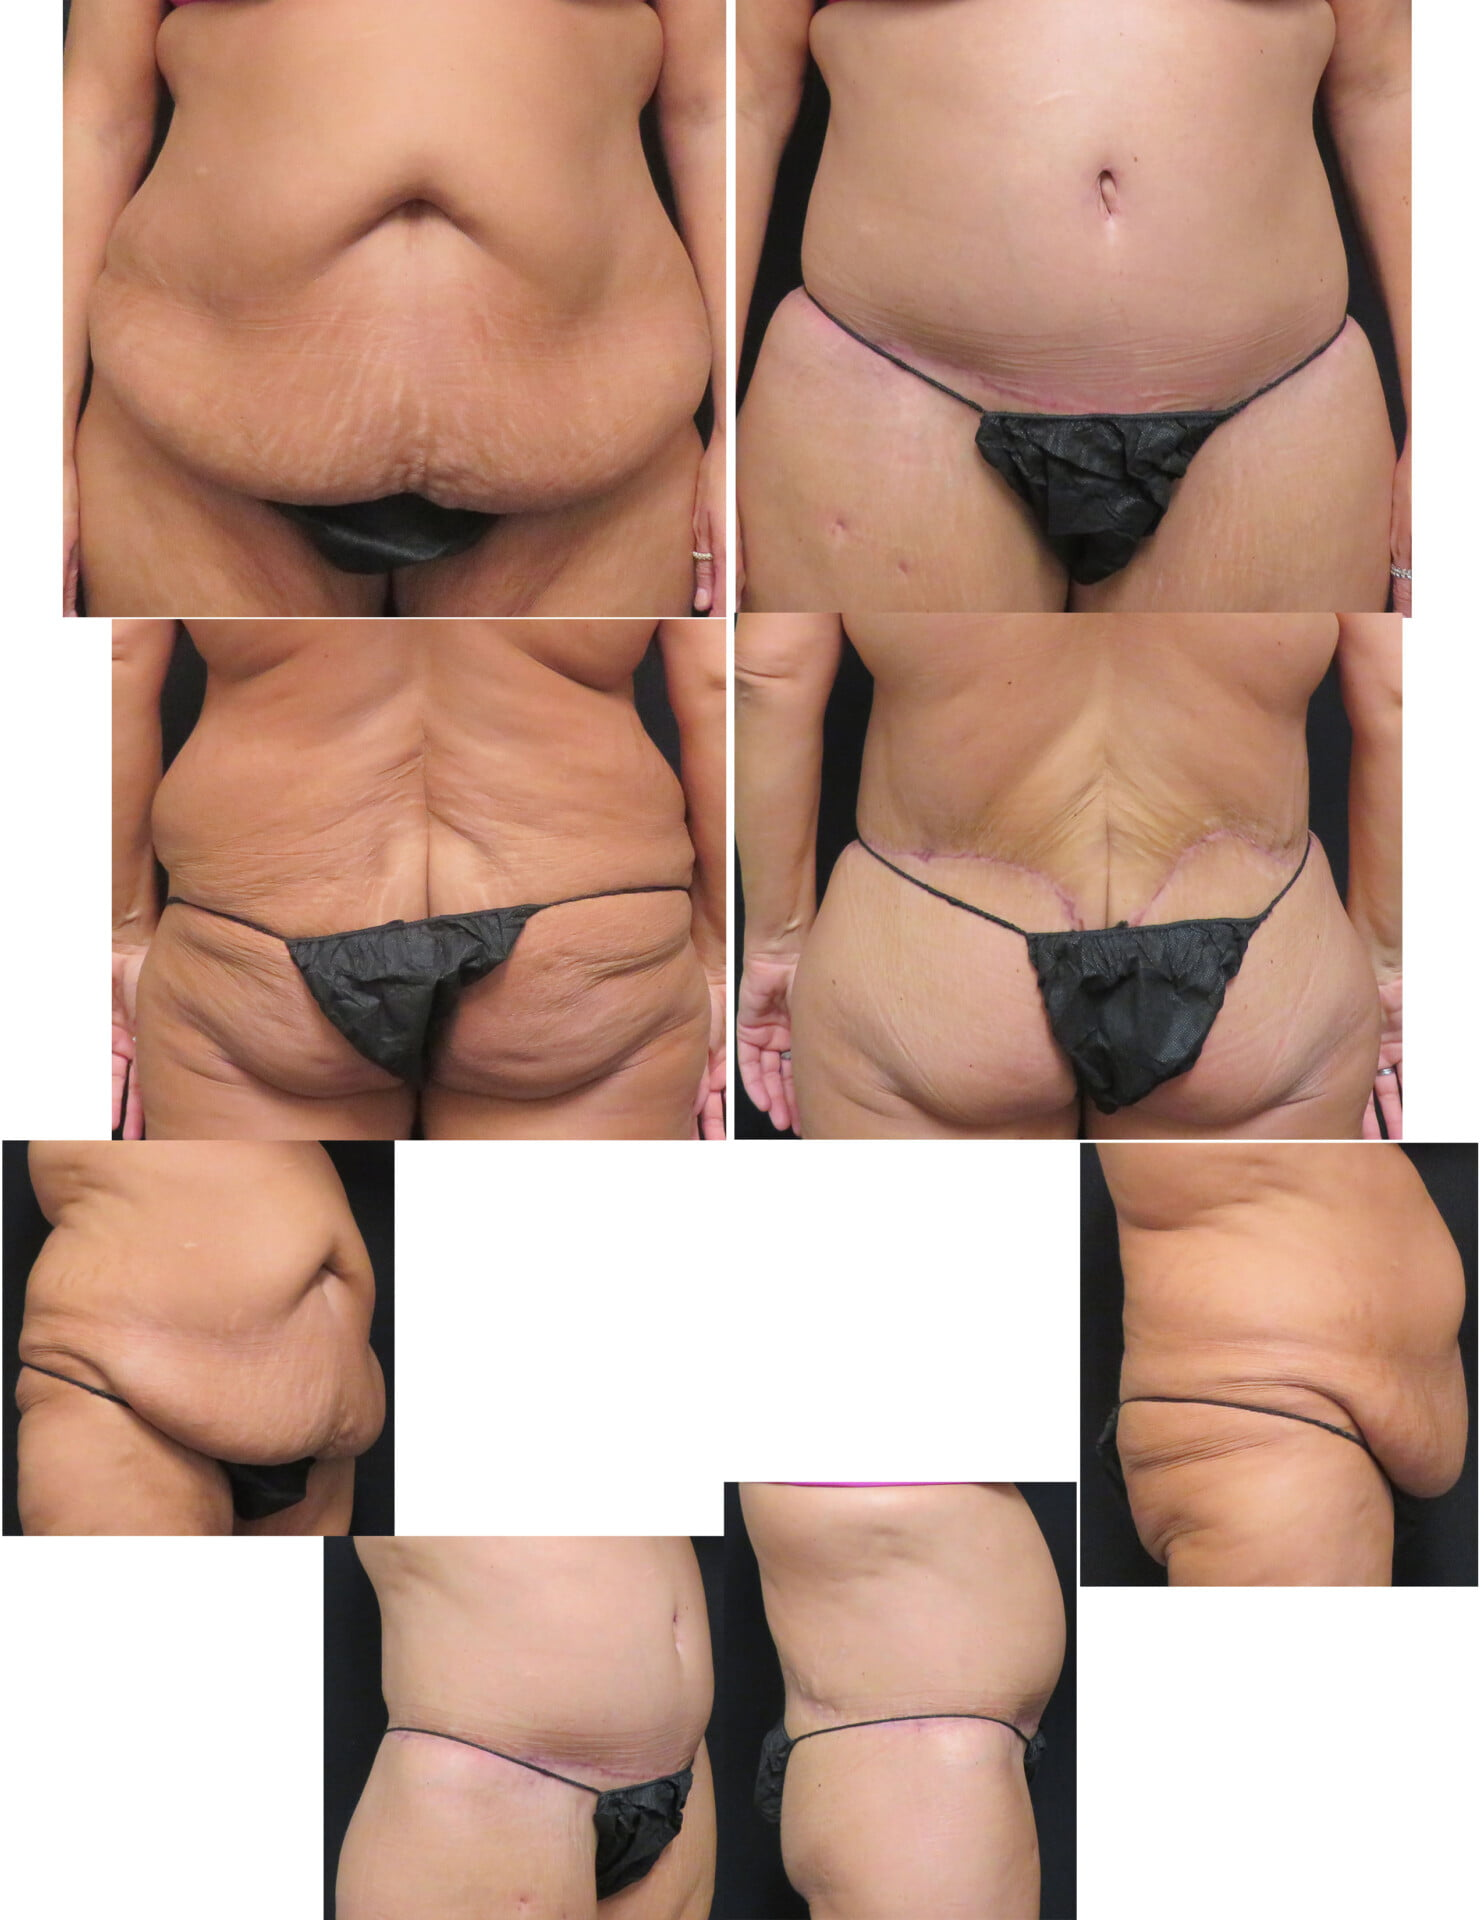 Jswetnam 914be5bdd5 American Board Of Cosmetic Surgery